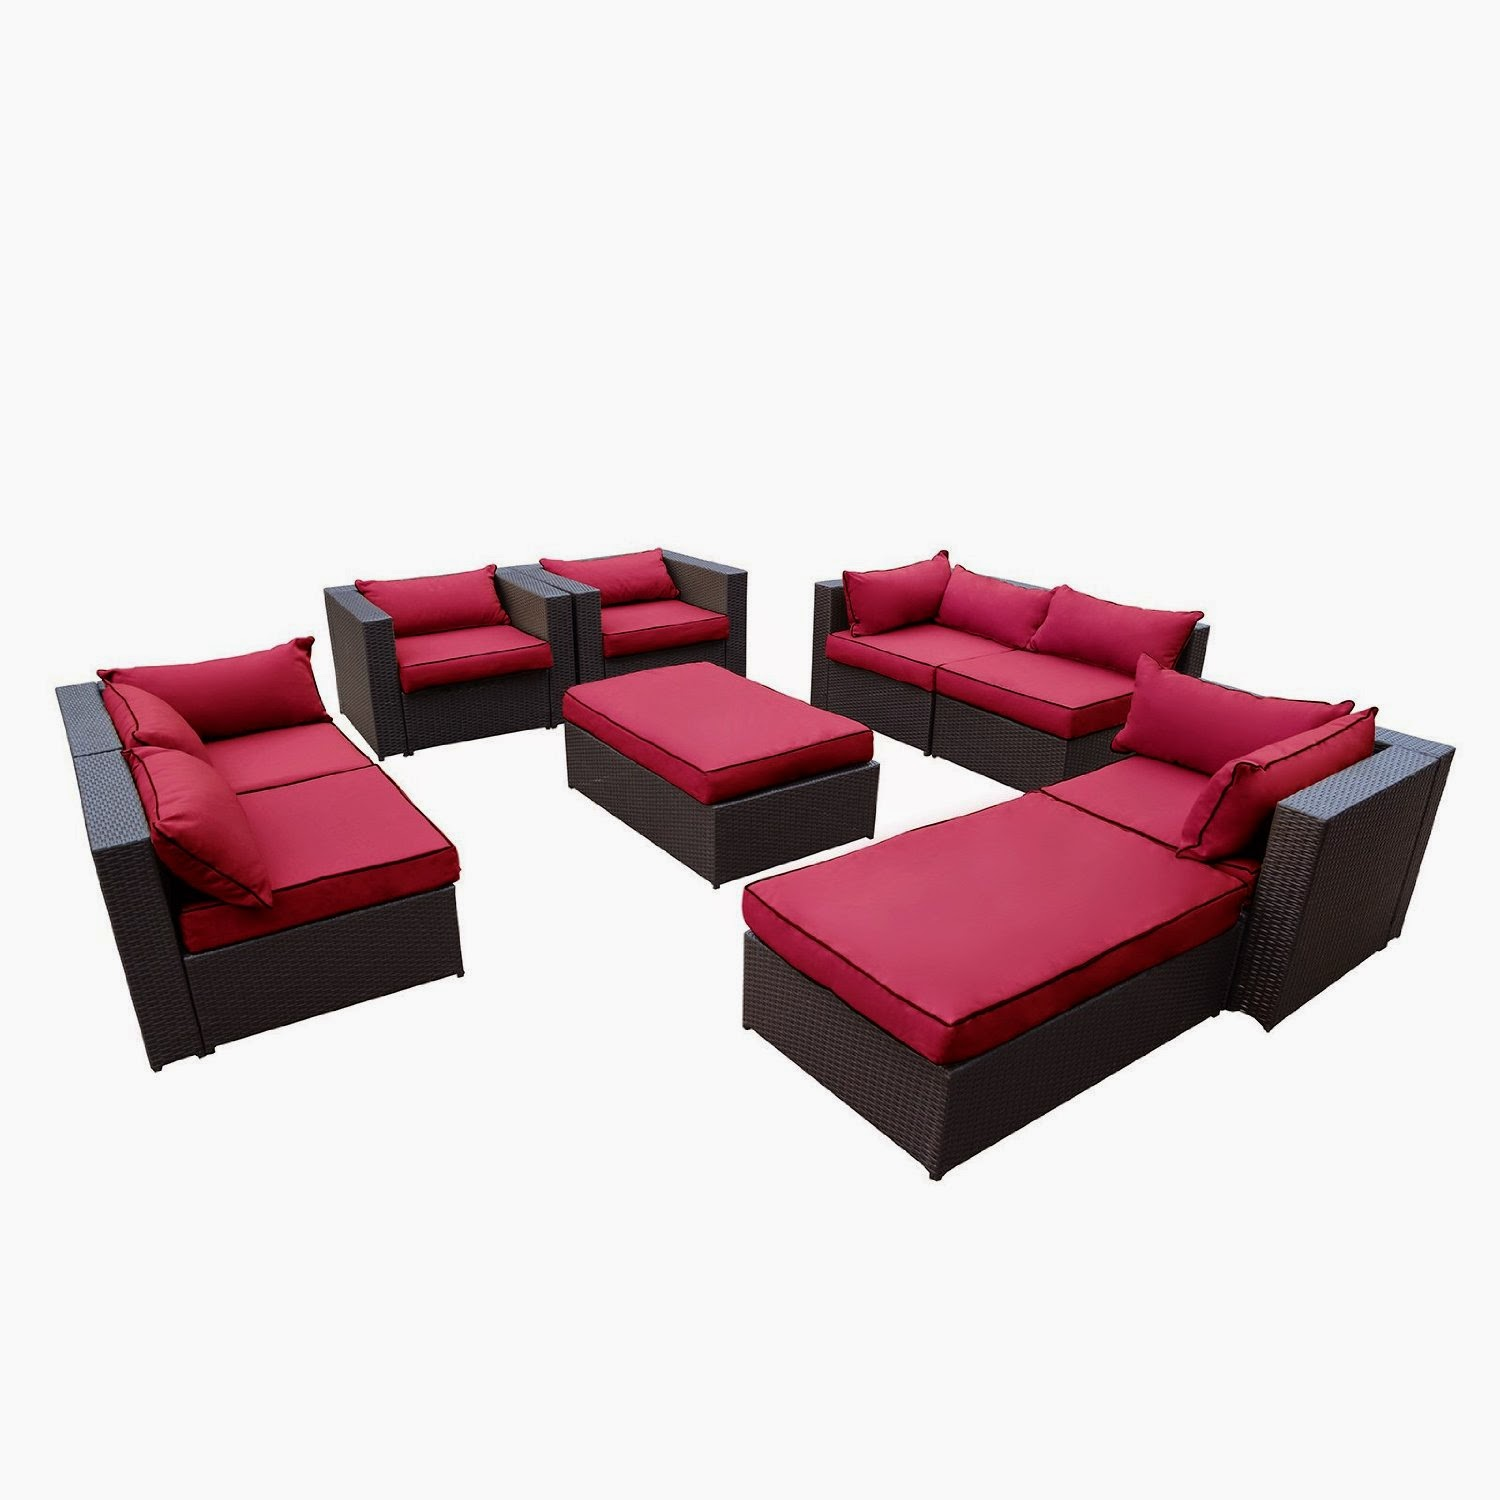 Outdoor Patio Rattan Wicker Furniture Sectional Sofa Garden Furniture Set Re